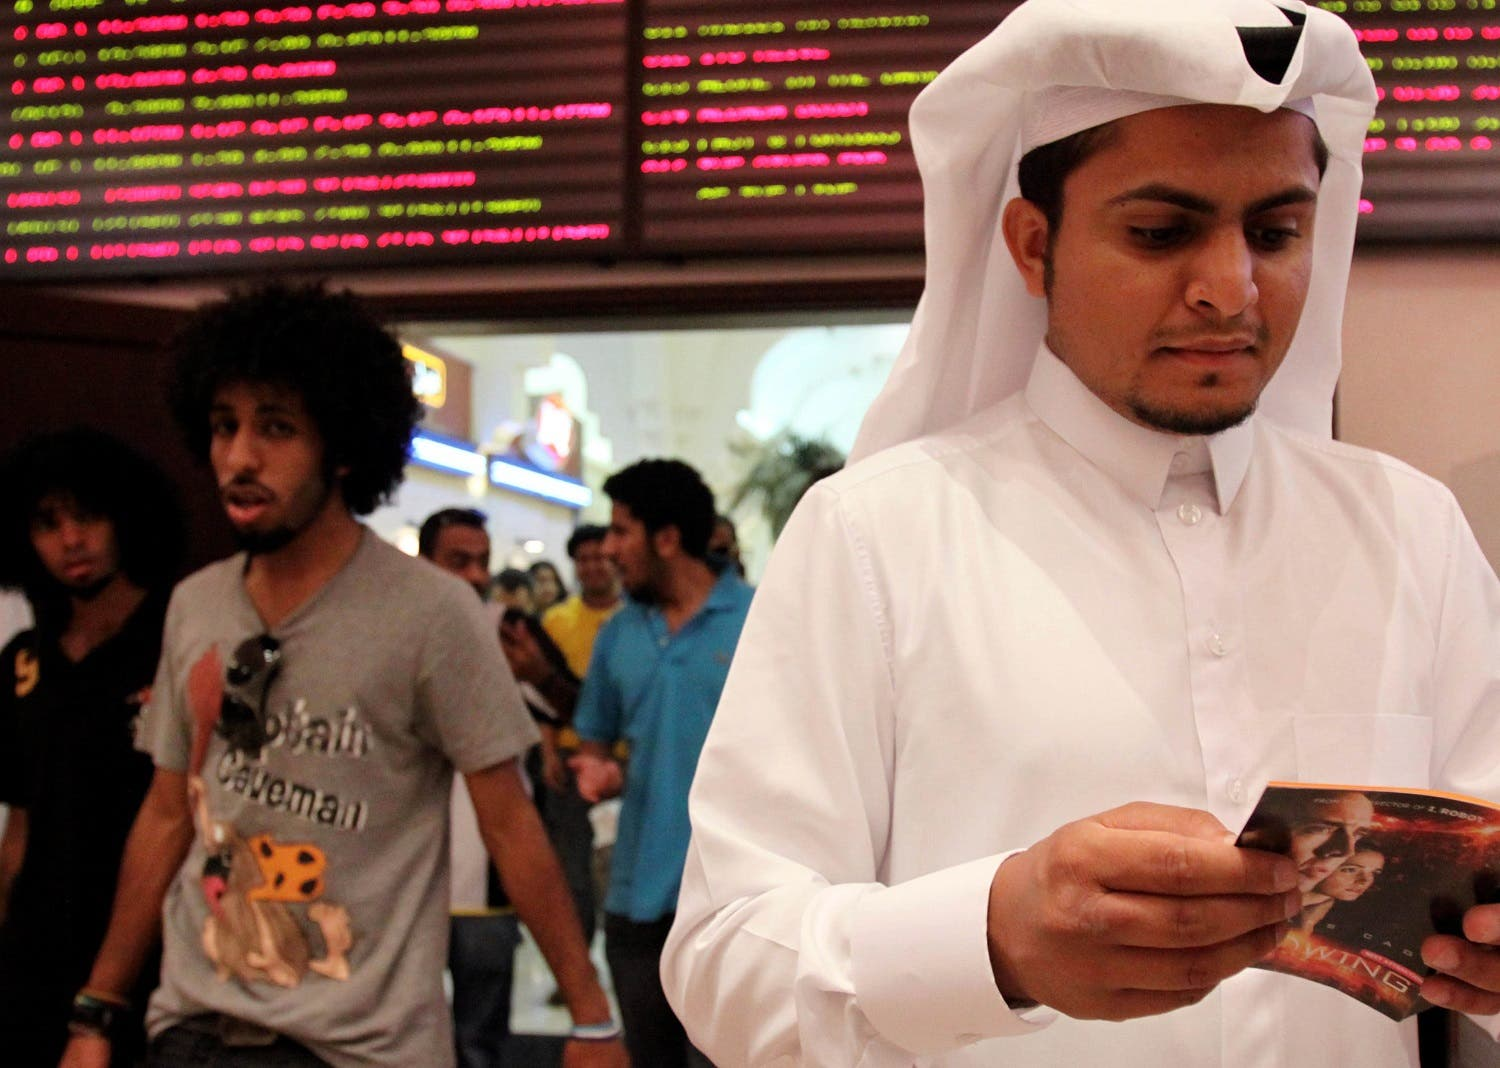 In this photo taken on May 7, 2009, Walid al-Musharraf, 27, of Riyadh, Saudi Arabia, looks at a brochure outside a Manama, Bahrain, movie theater. (File photo: AP)